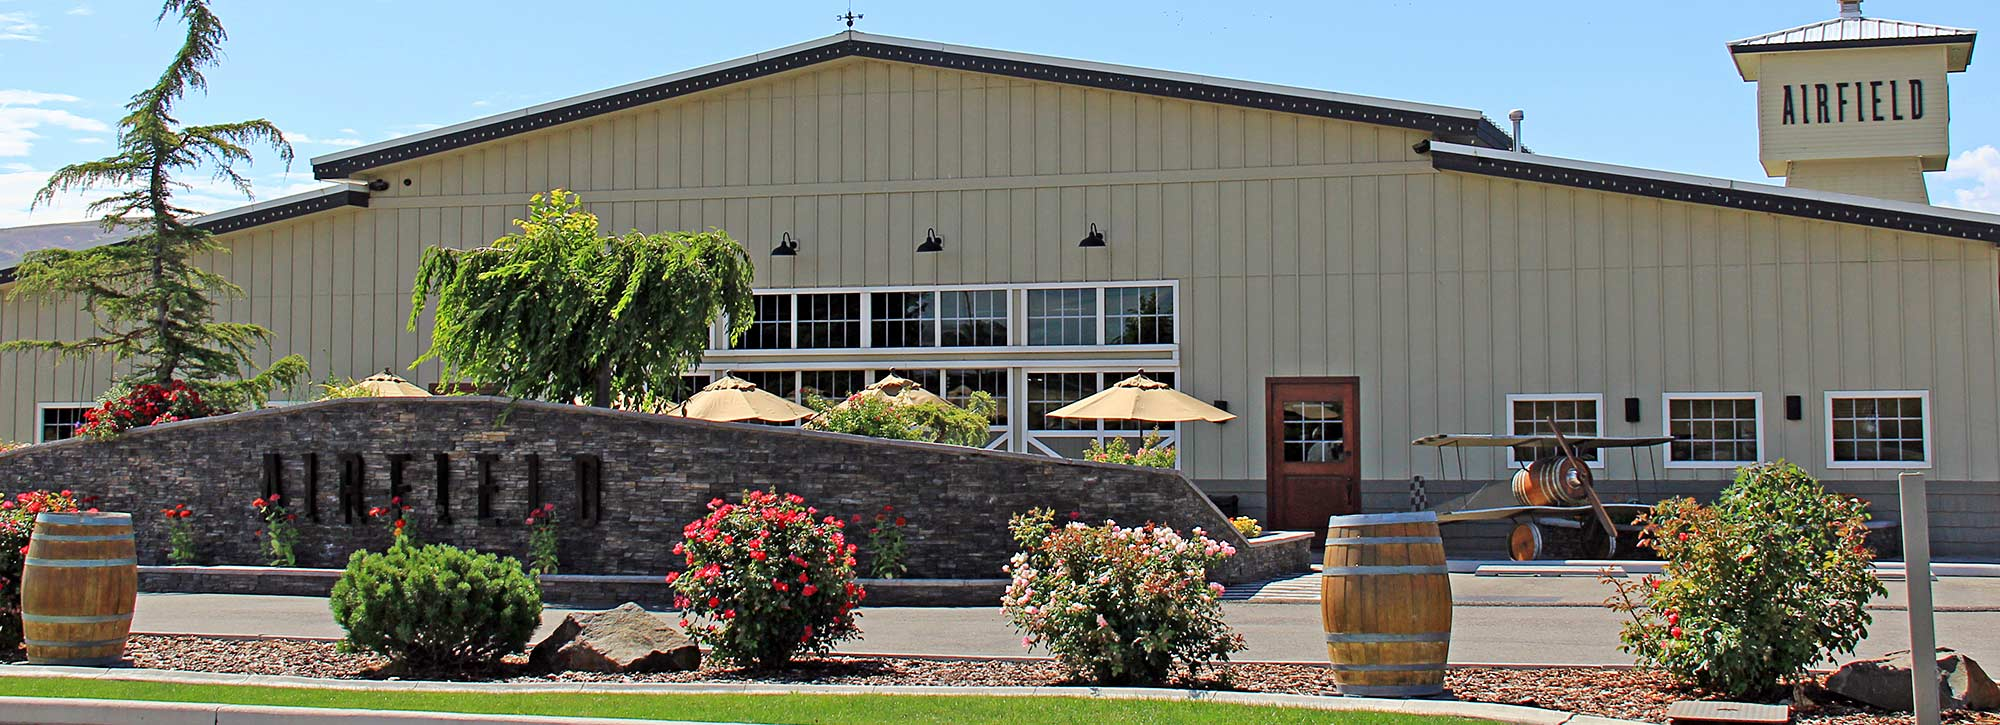 Airfield Winery